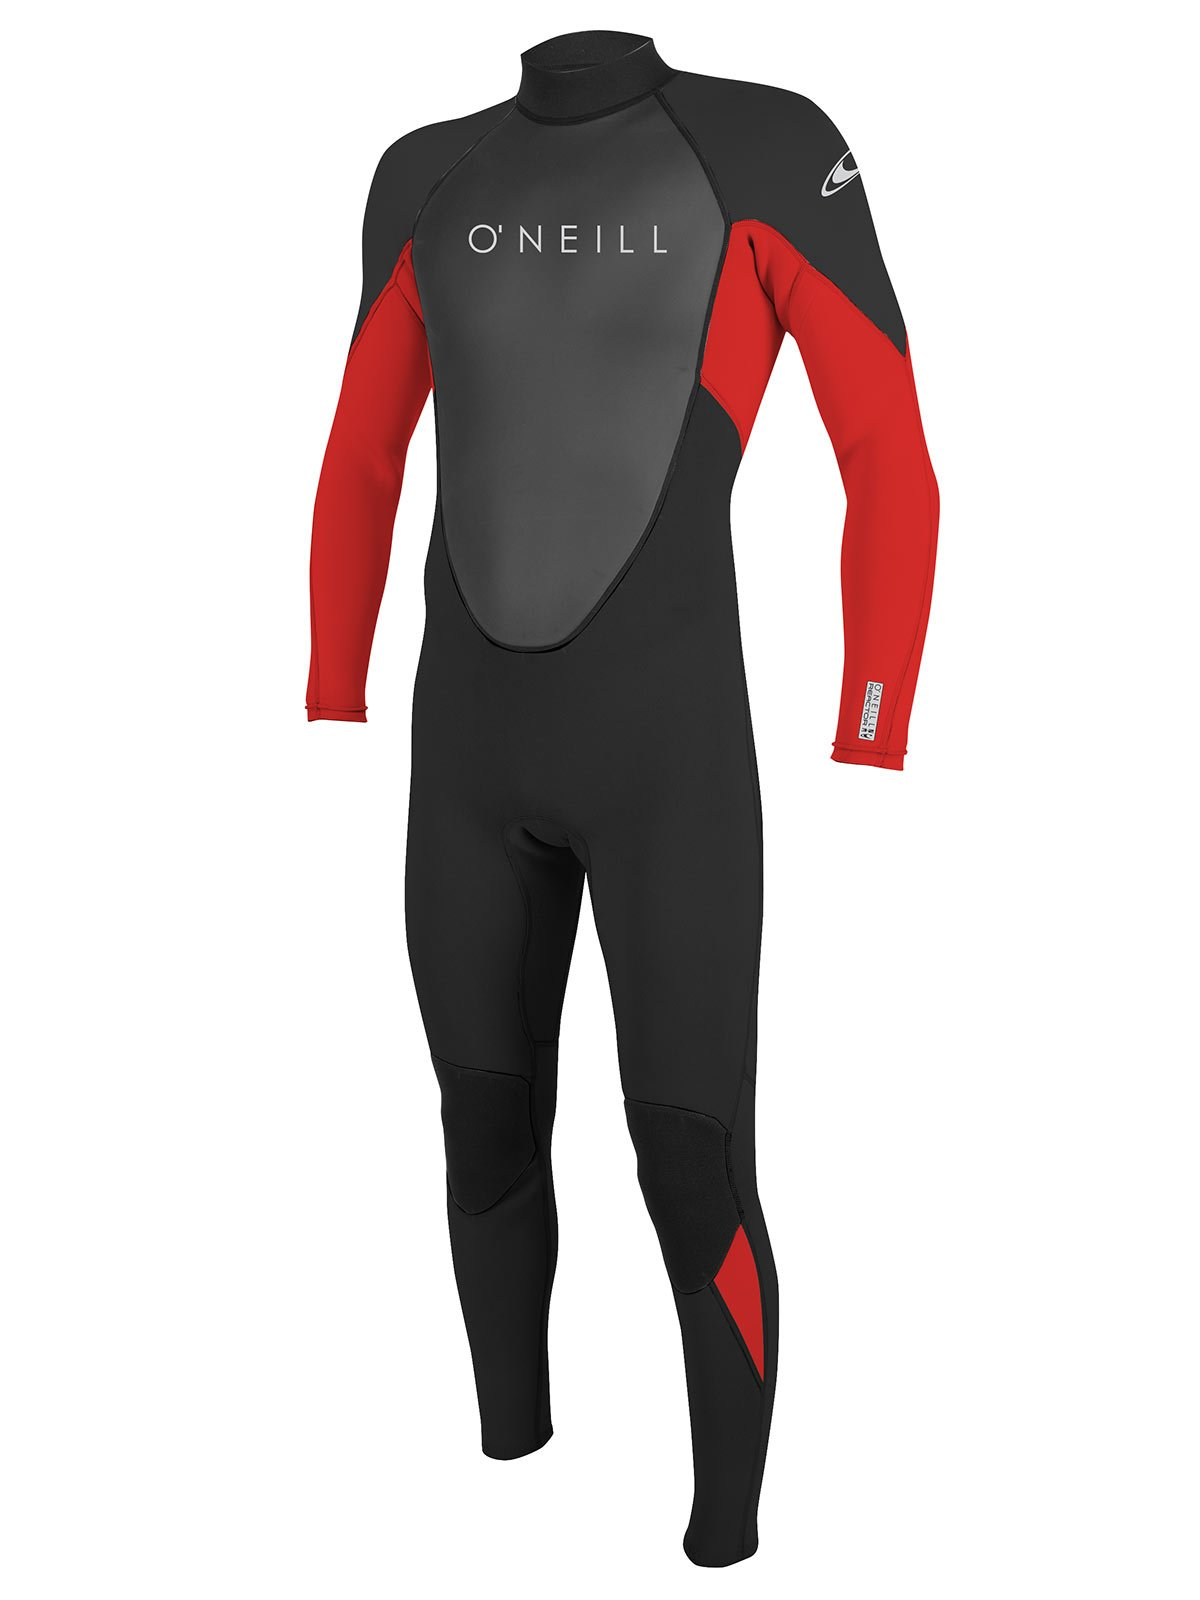 O'Neill Reactor 2 Men's 3/2mm Full Wetsuit S Black/red/black (5283IS) by O'Neill Wetsuits (Image #1)